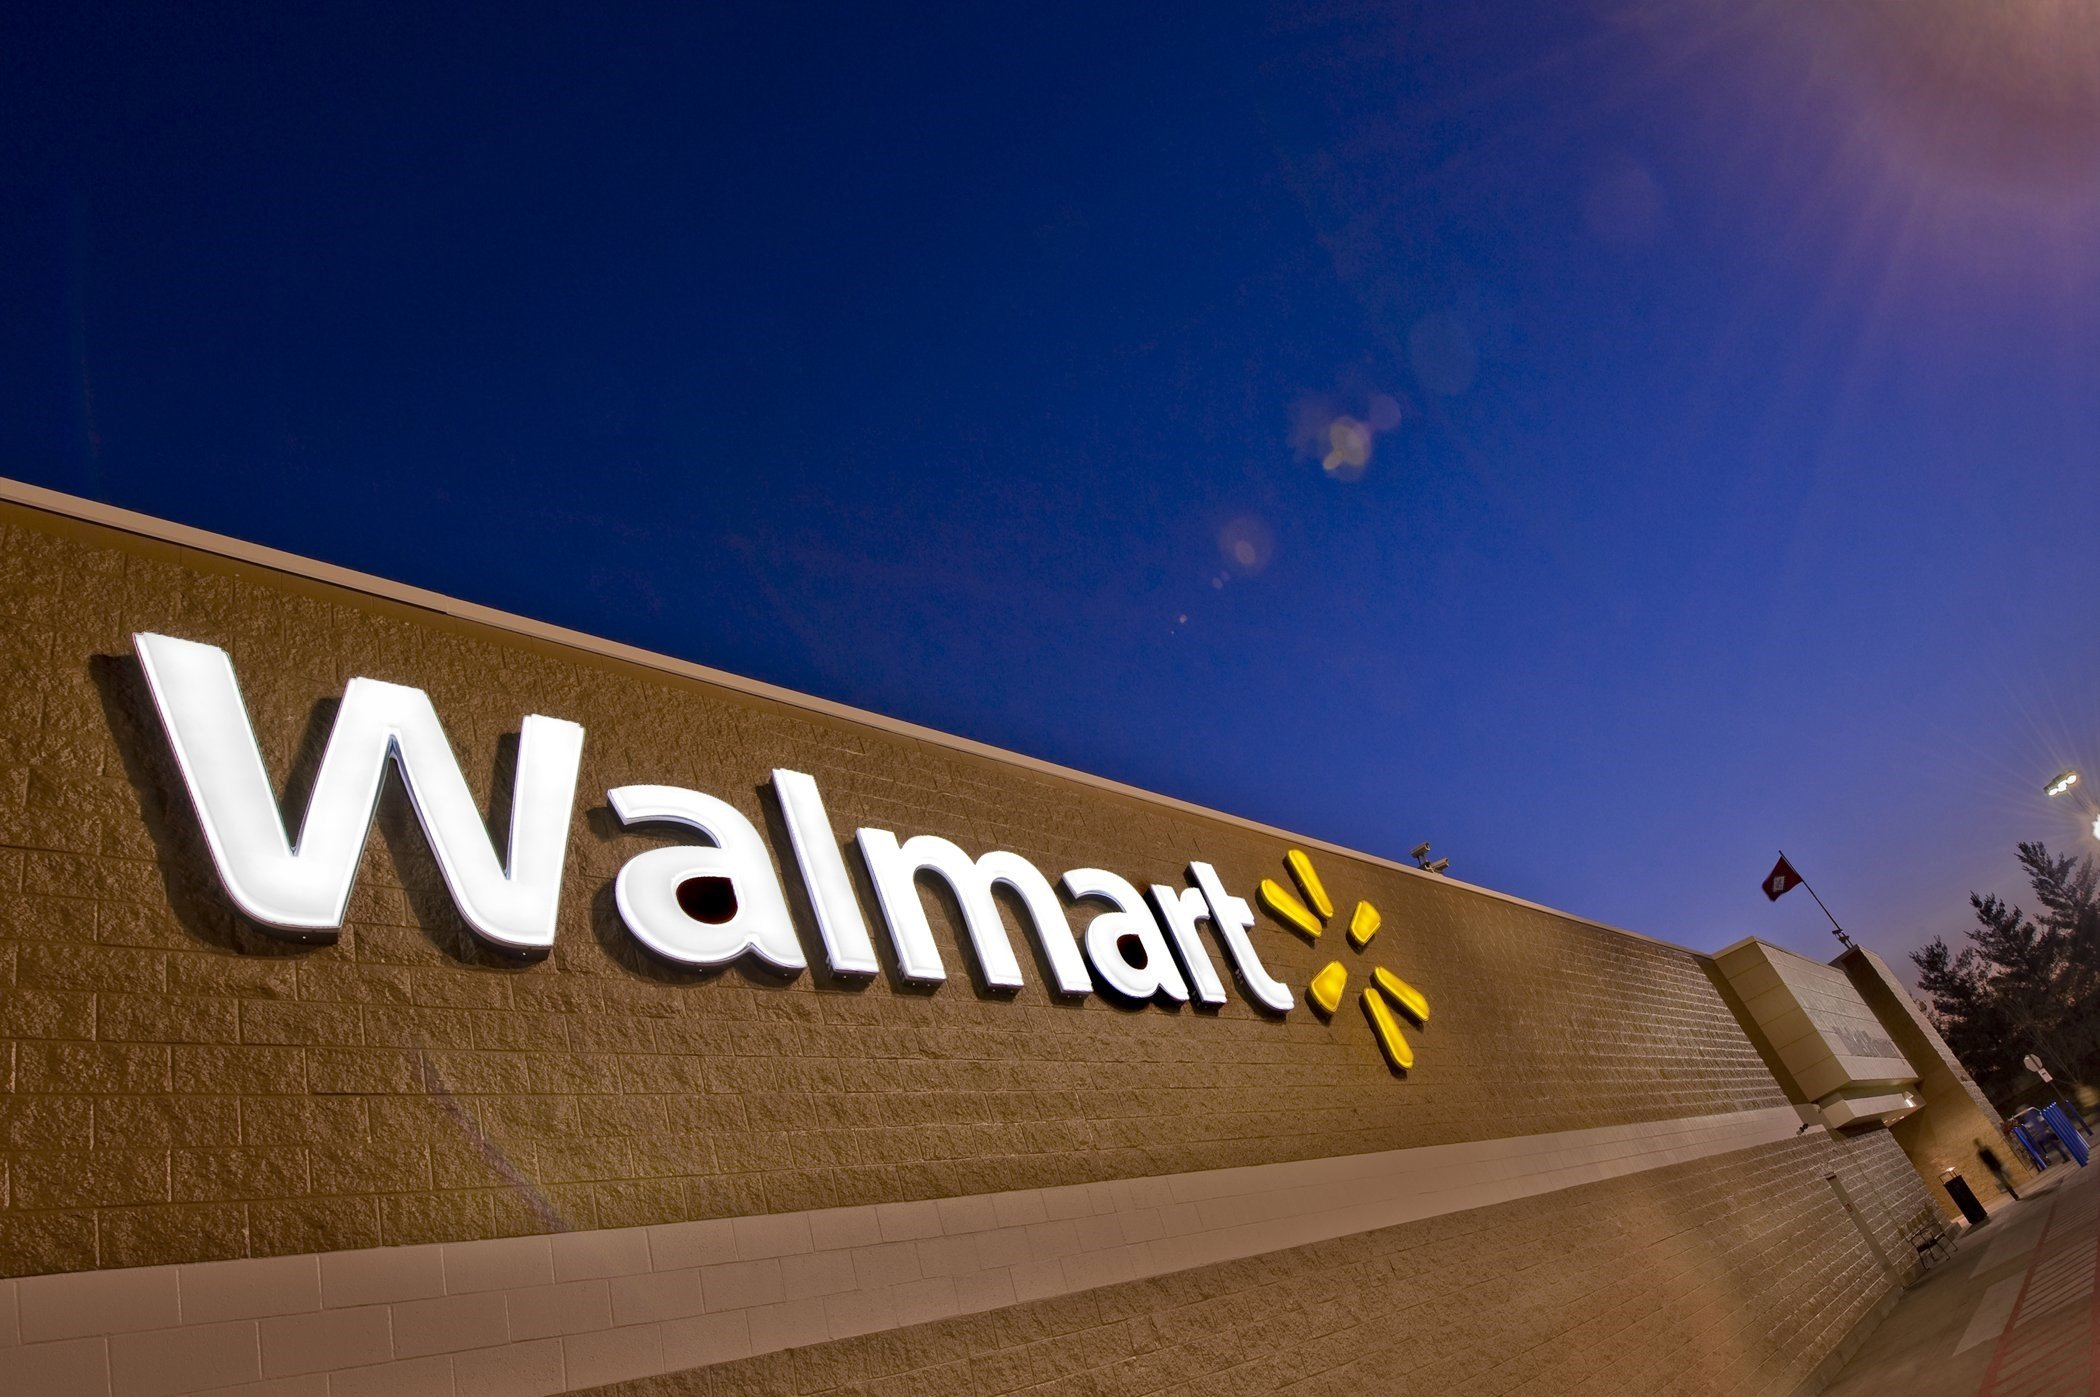 Walmart issued a statement Monday, July 17, 2017 apologizing for an offensive slur used by a third-party seller in a product listing on its website.